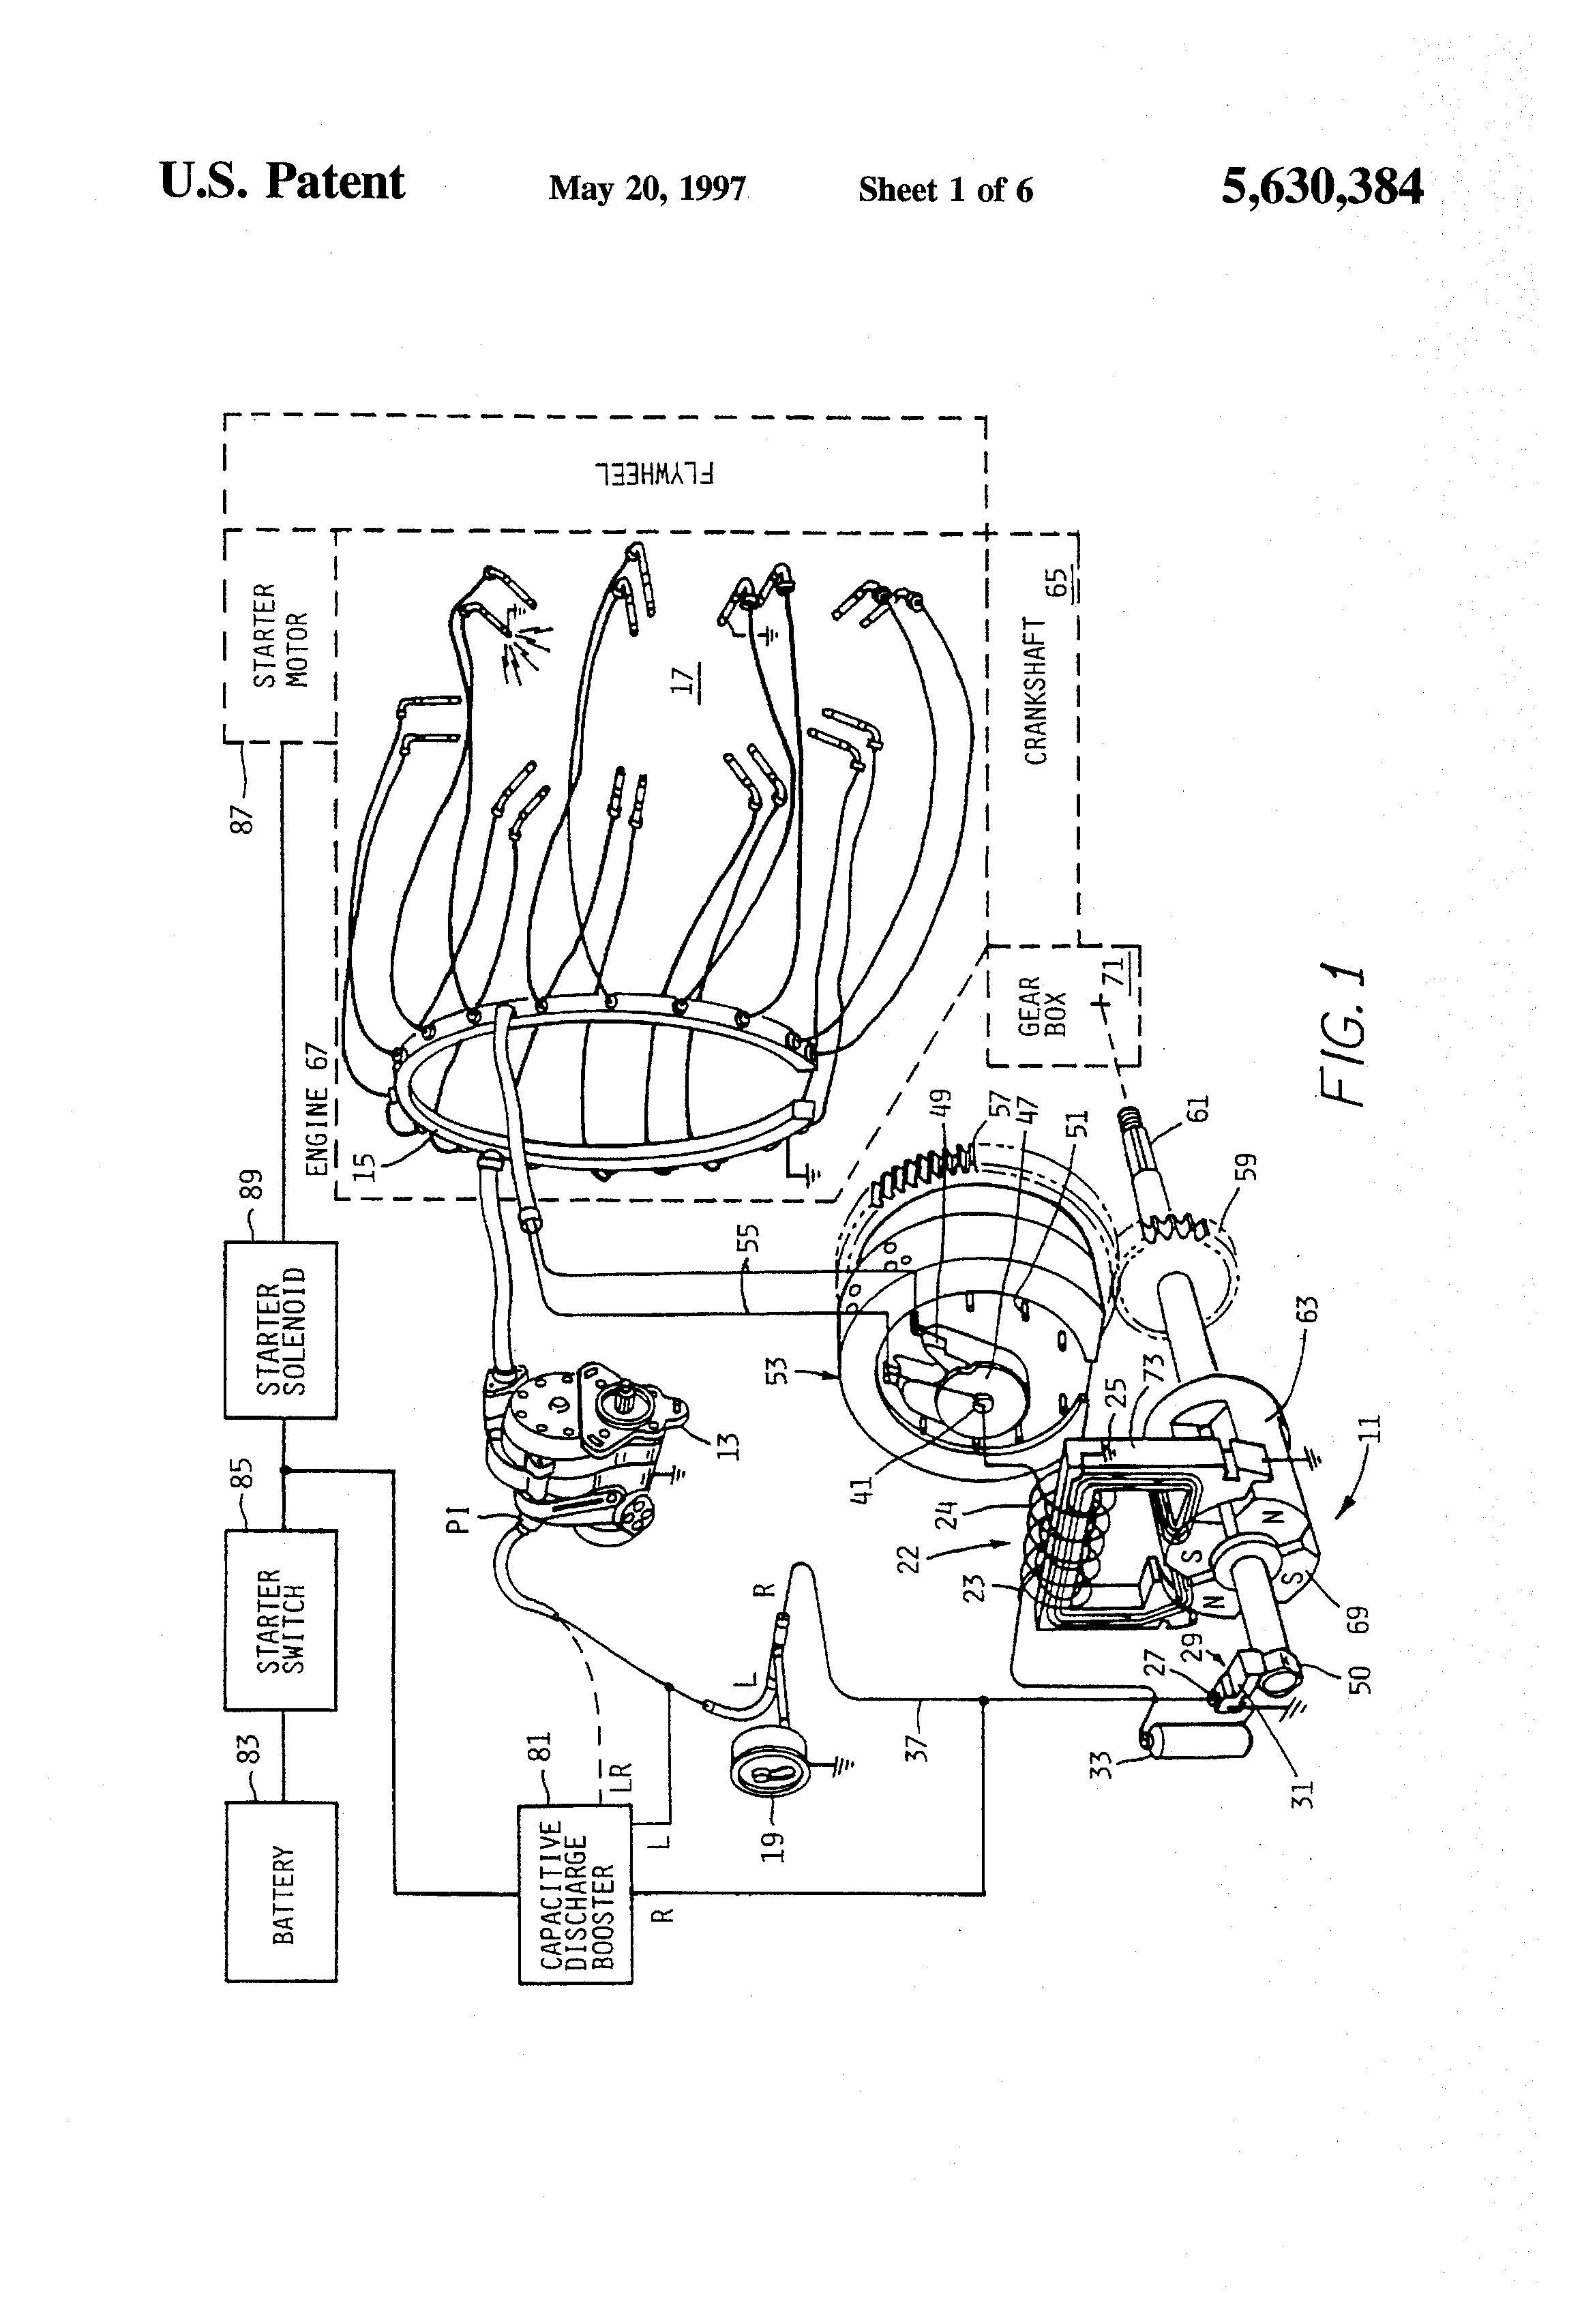 patent us5630384 - magneto-based ignition system for ... bendix magnetos cap wire diagram 1998 dodge ram 1500 distributor cap wiring diagram #14